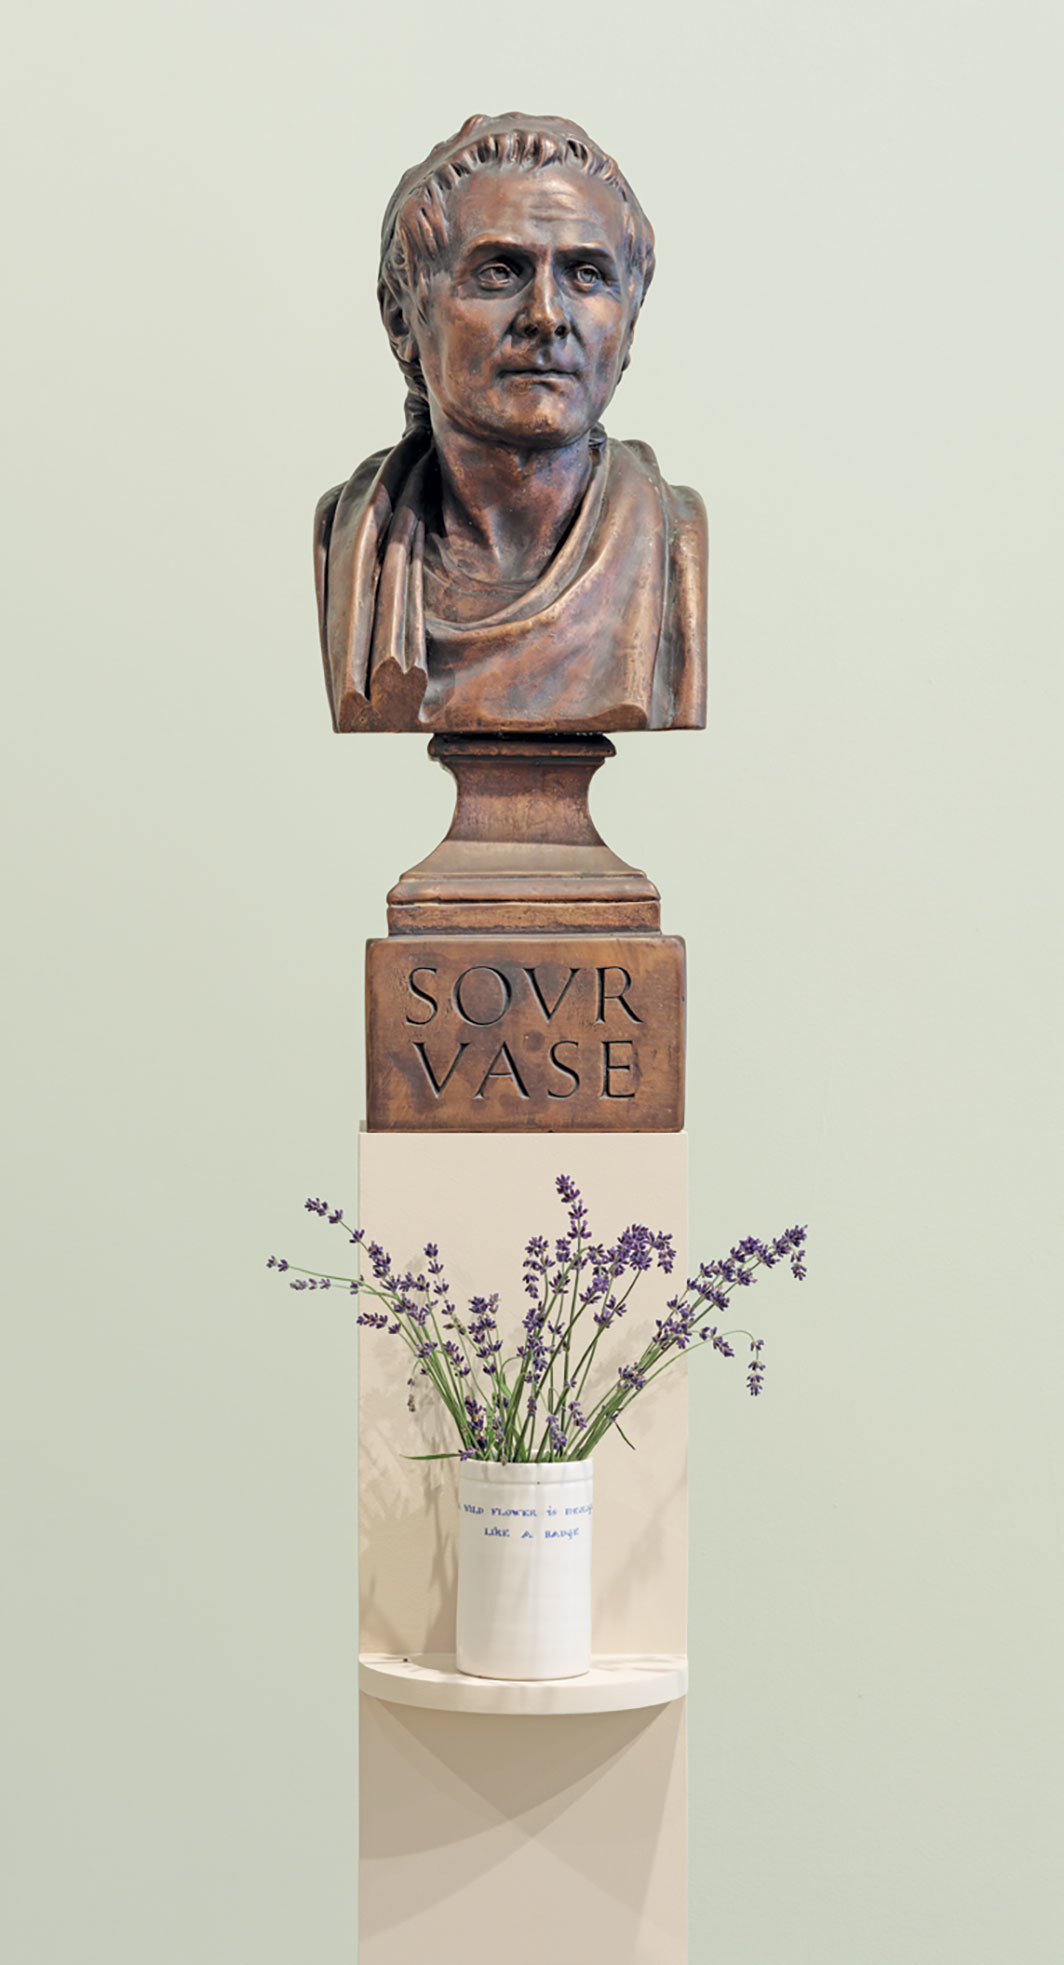 "Ian Hamilton Finlay, ROUSSEAU (Sour Vase)/A Wild Flower Is Ideological, like a Badge, 1991–93, cast bronze, ceramic vase; bust: 27 1⁄2 × 10 1⁄2 × 11"", vase: 5 1⁄2 × 3 3⁄8 × 3 3⁄8""."